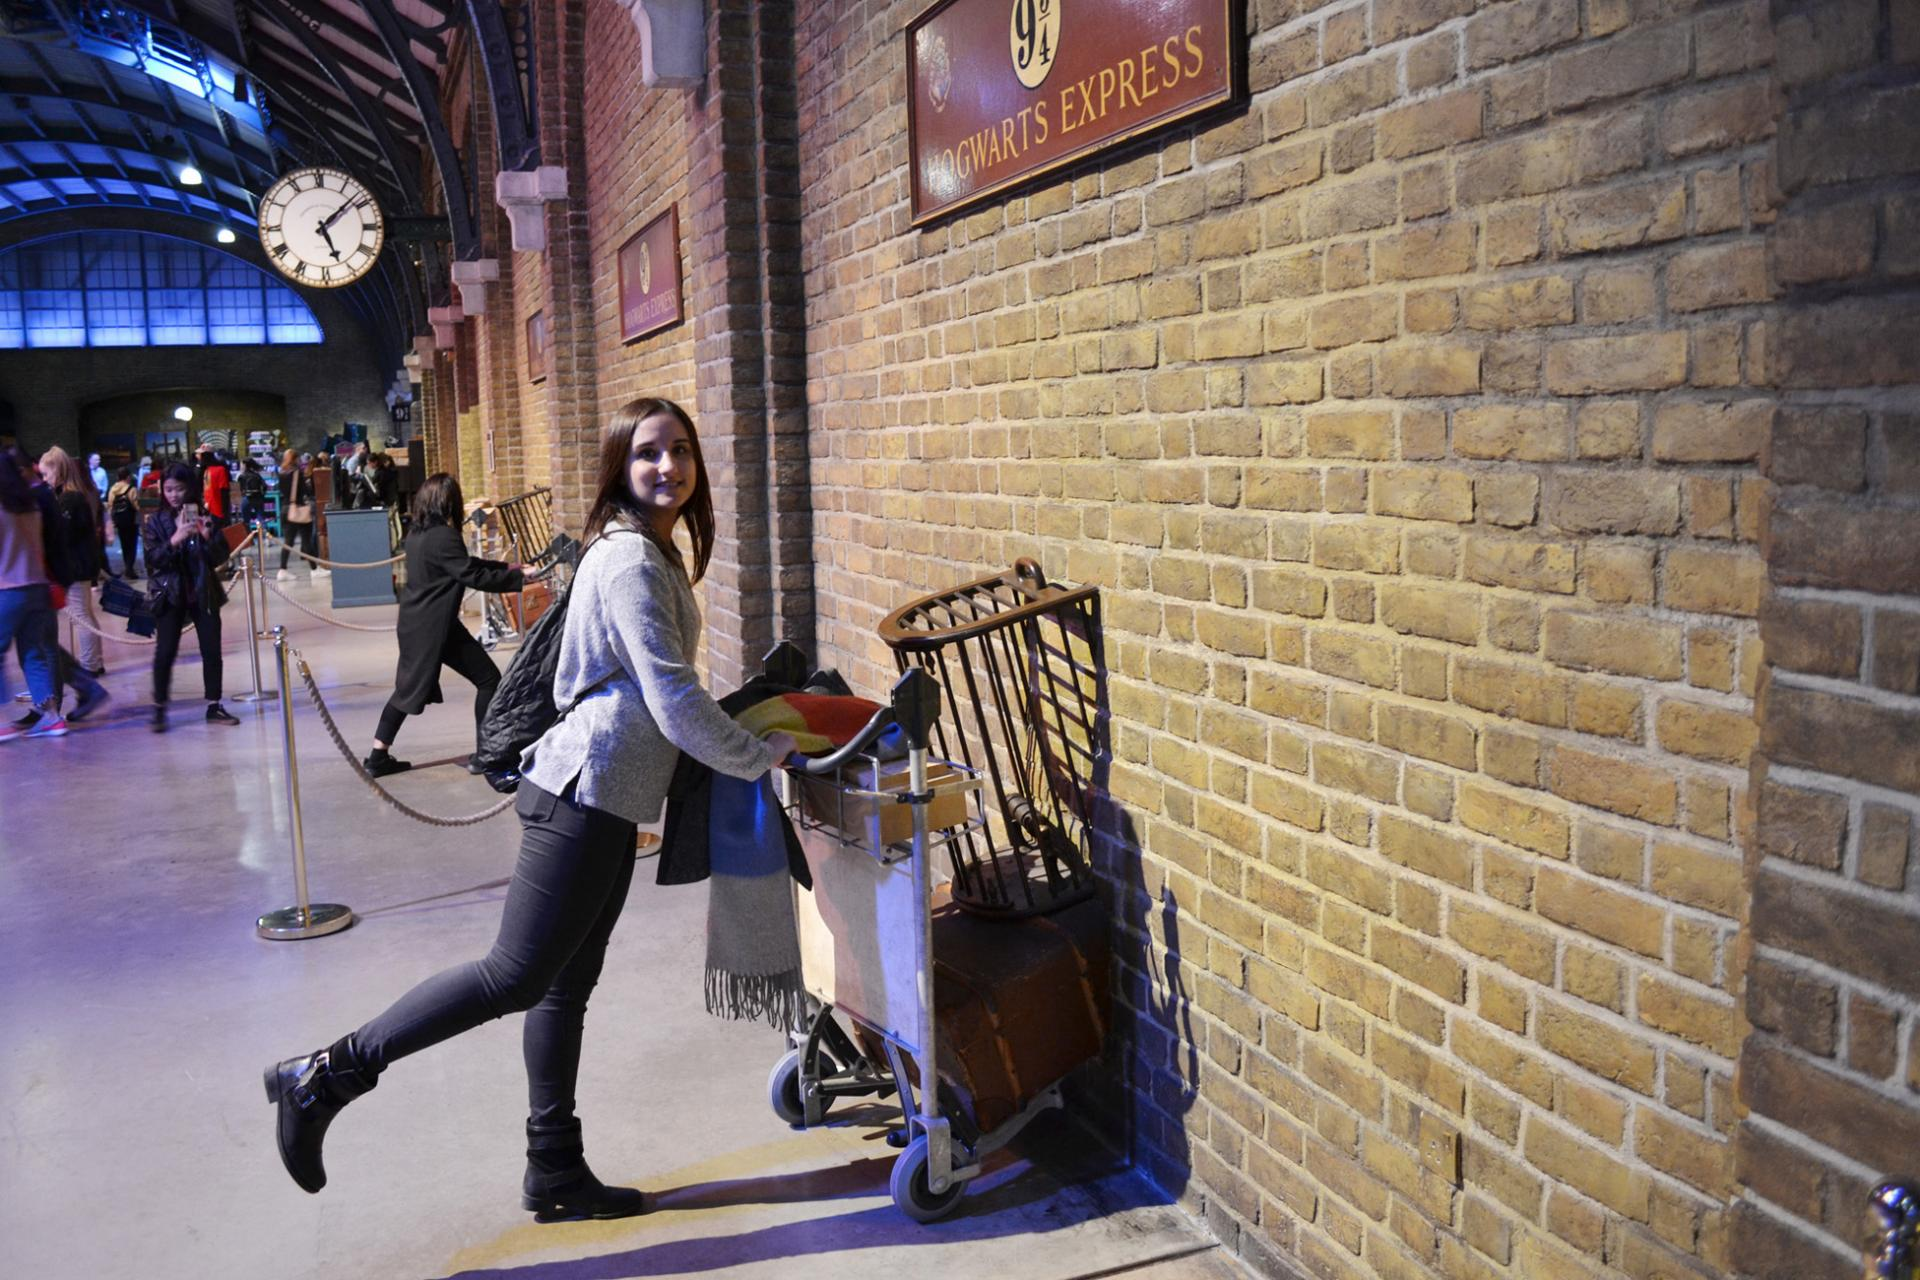 Laura cruzando a la plataforma 9 3/4 en Warner Bros London